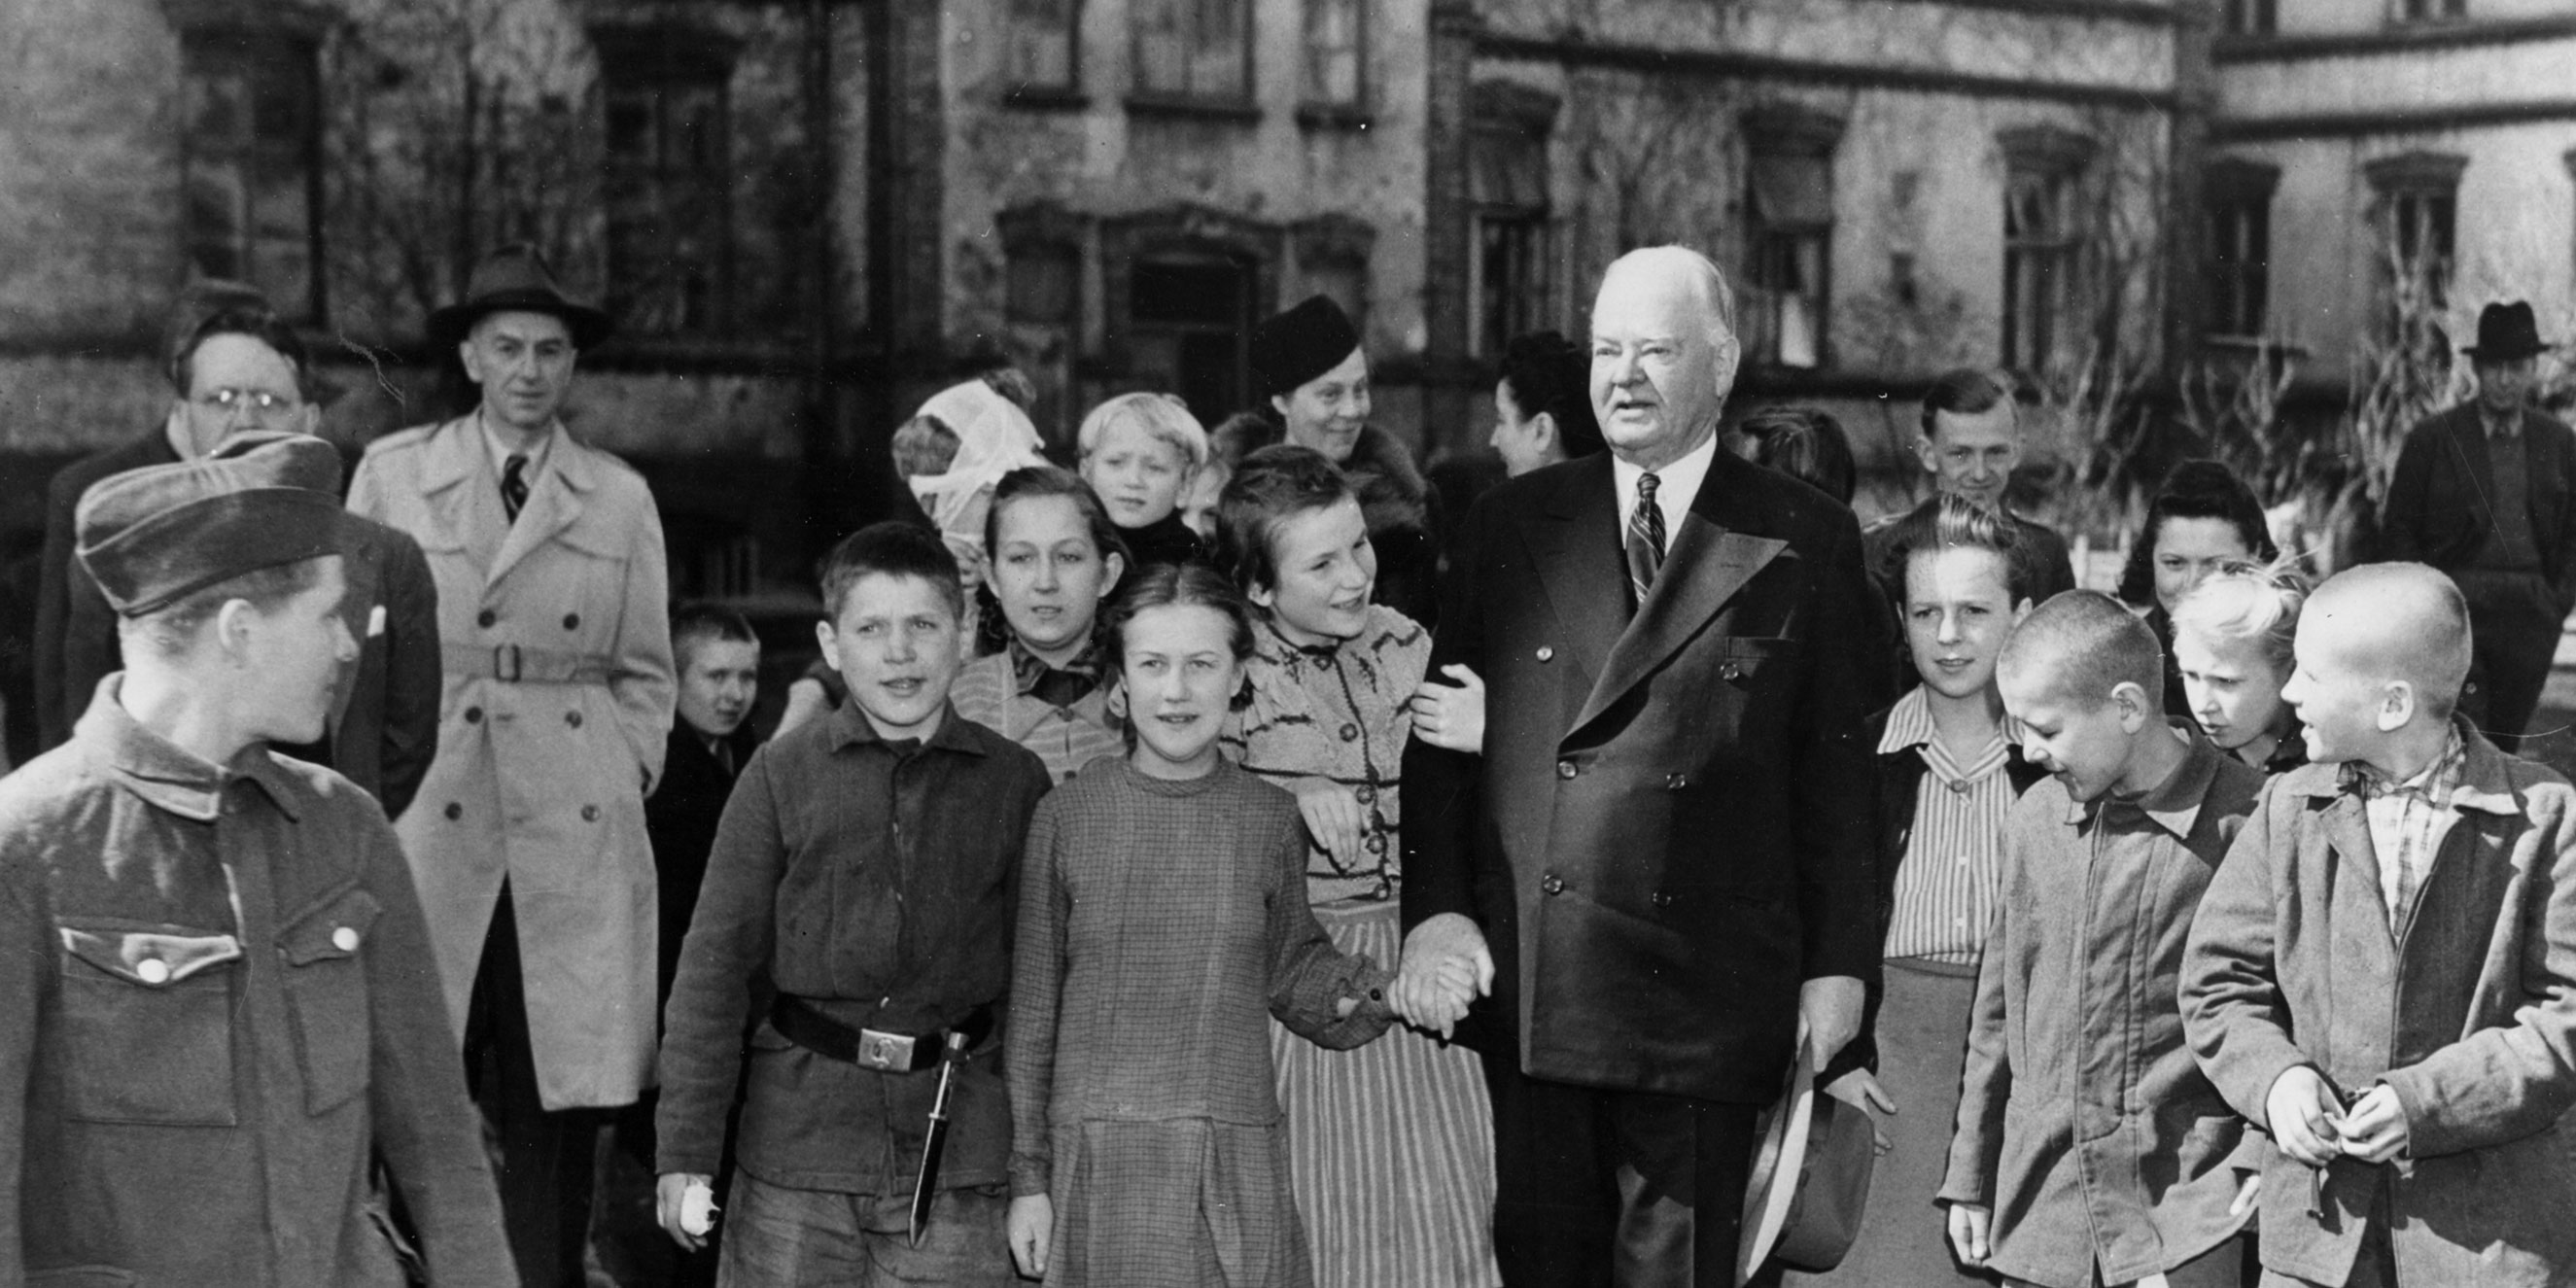 Admiring children surround an elderly Herbert Hoover during a visit to Warsaw.